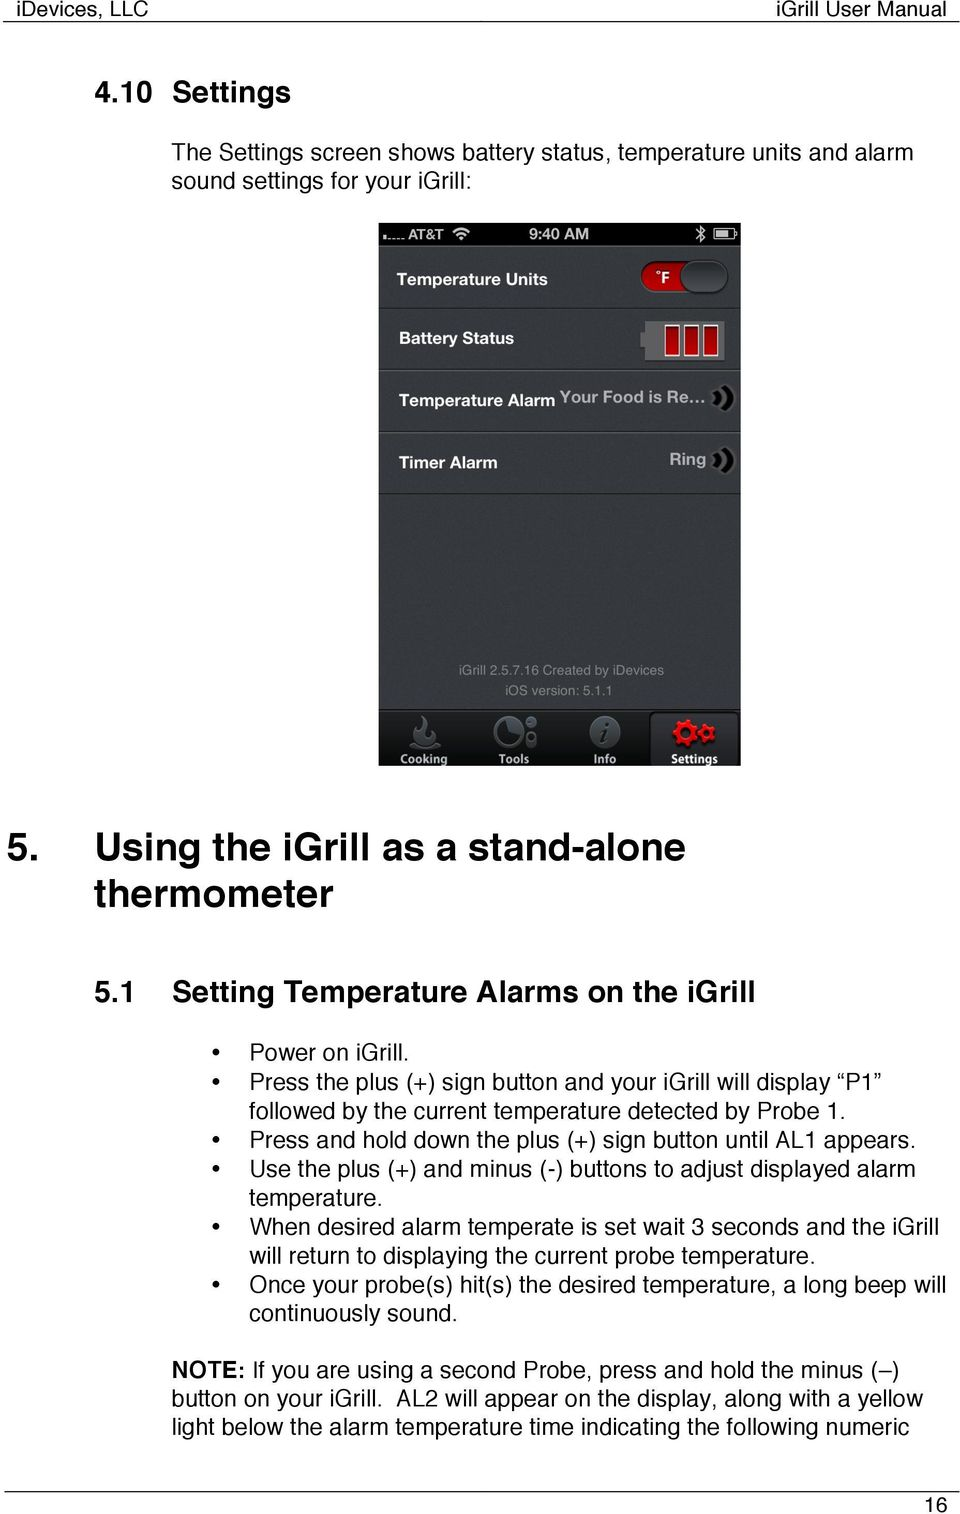 Press and hold down the plus (+) sign button until AL1 appears. Use the plus (+) and minus (-) buttons to adjust displayed alarm temperature.